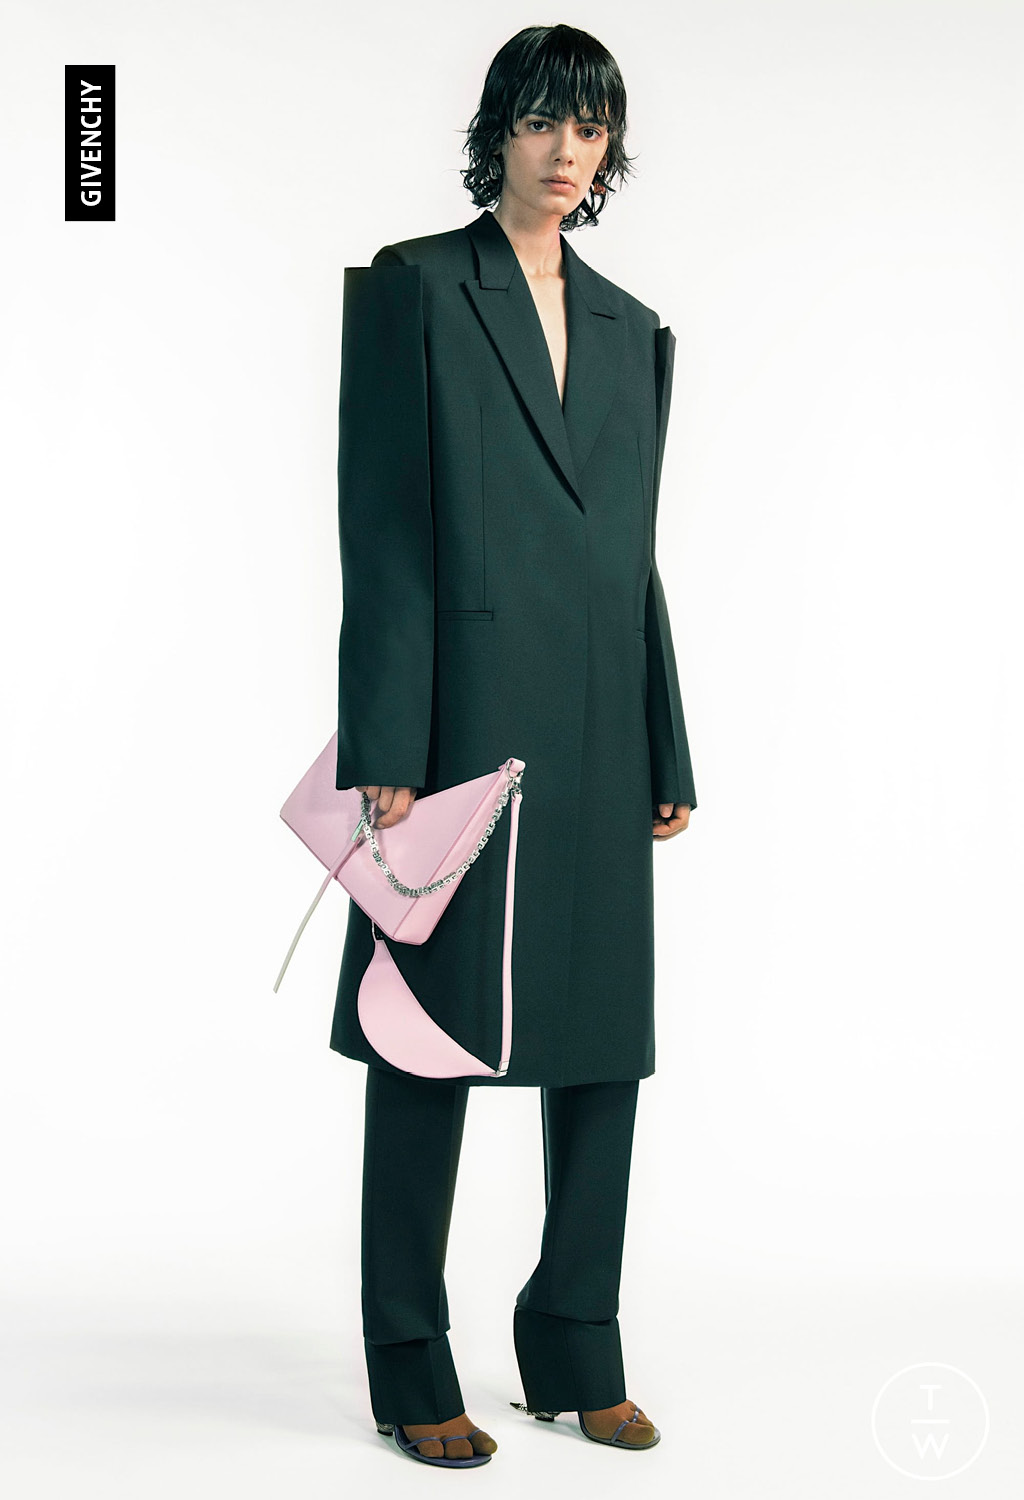 givenchy s21